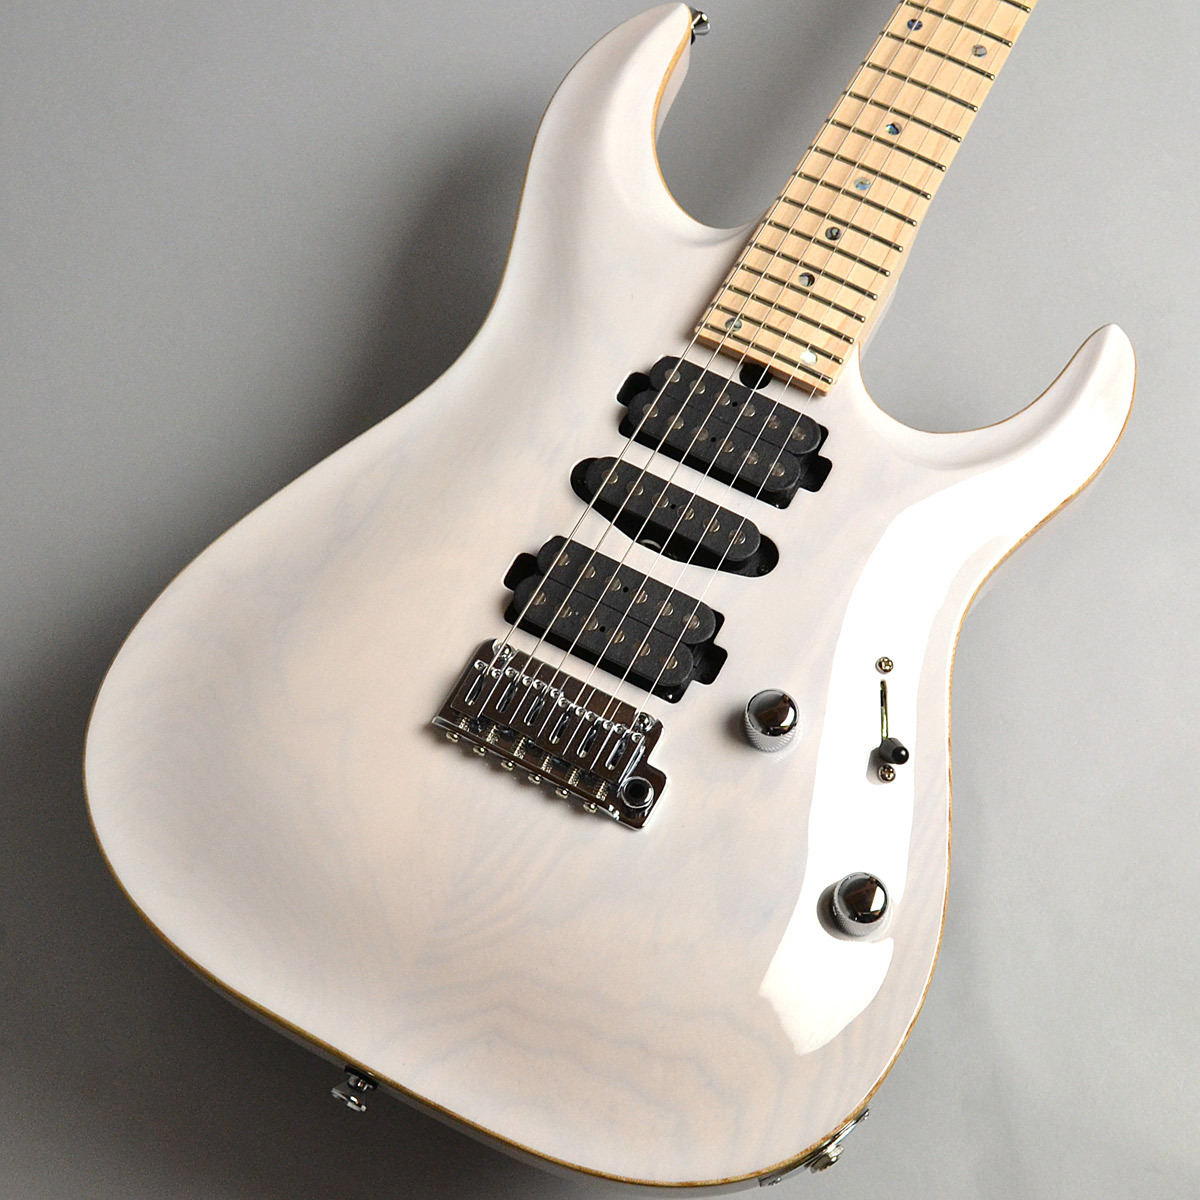 T's Guitars DST-24 Carvedtop / Trans White エレキギター 【ティーズギター】【新宿PePe店】